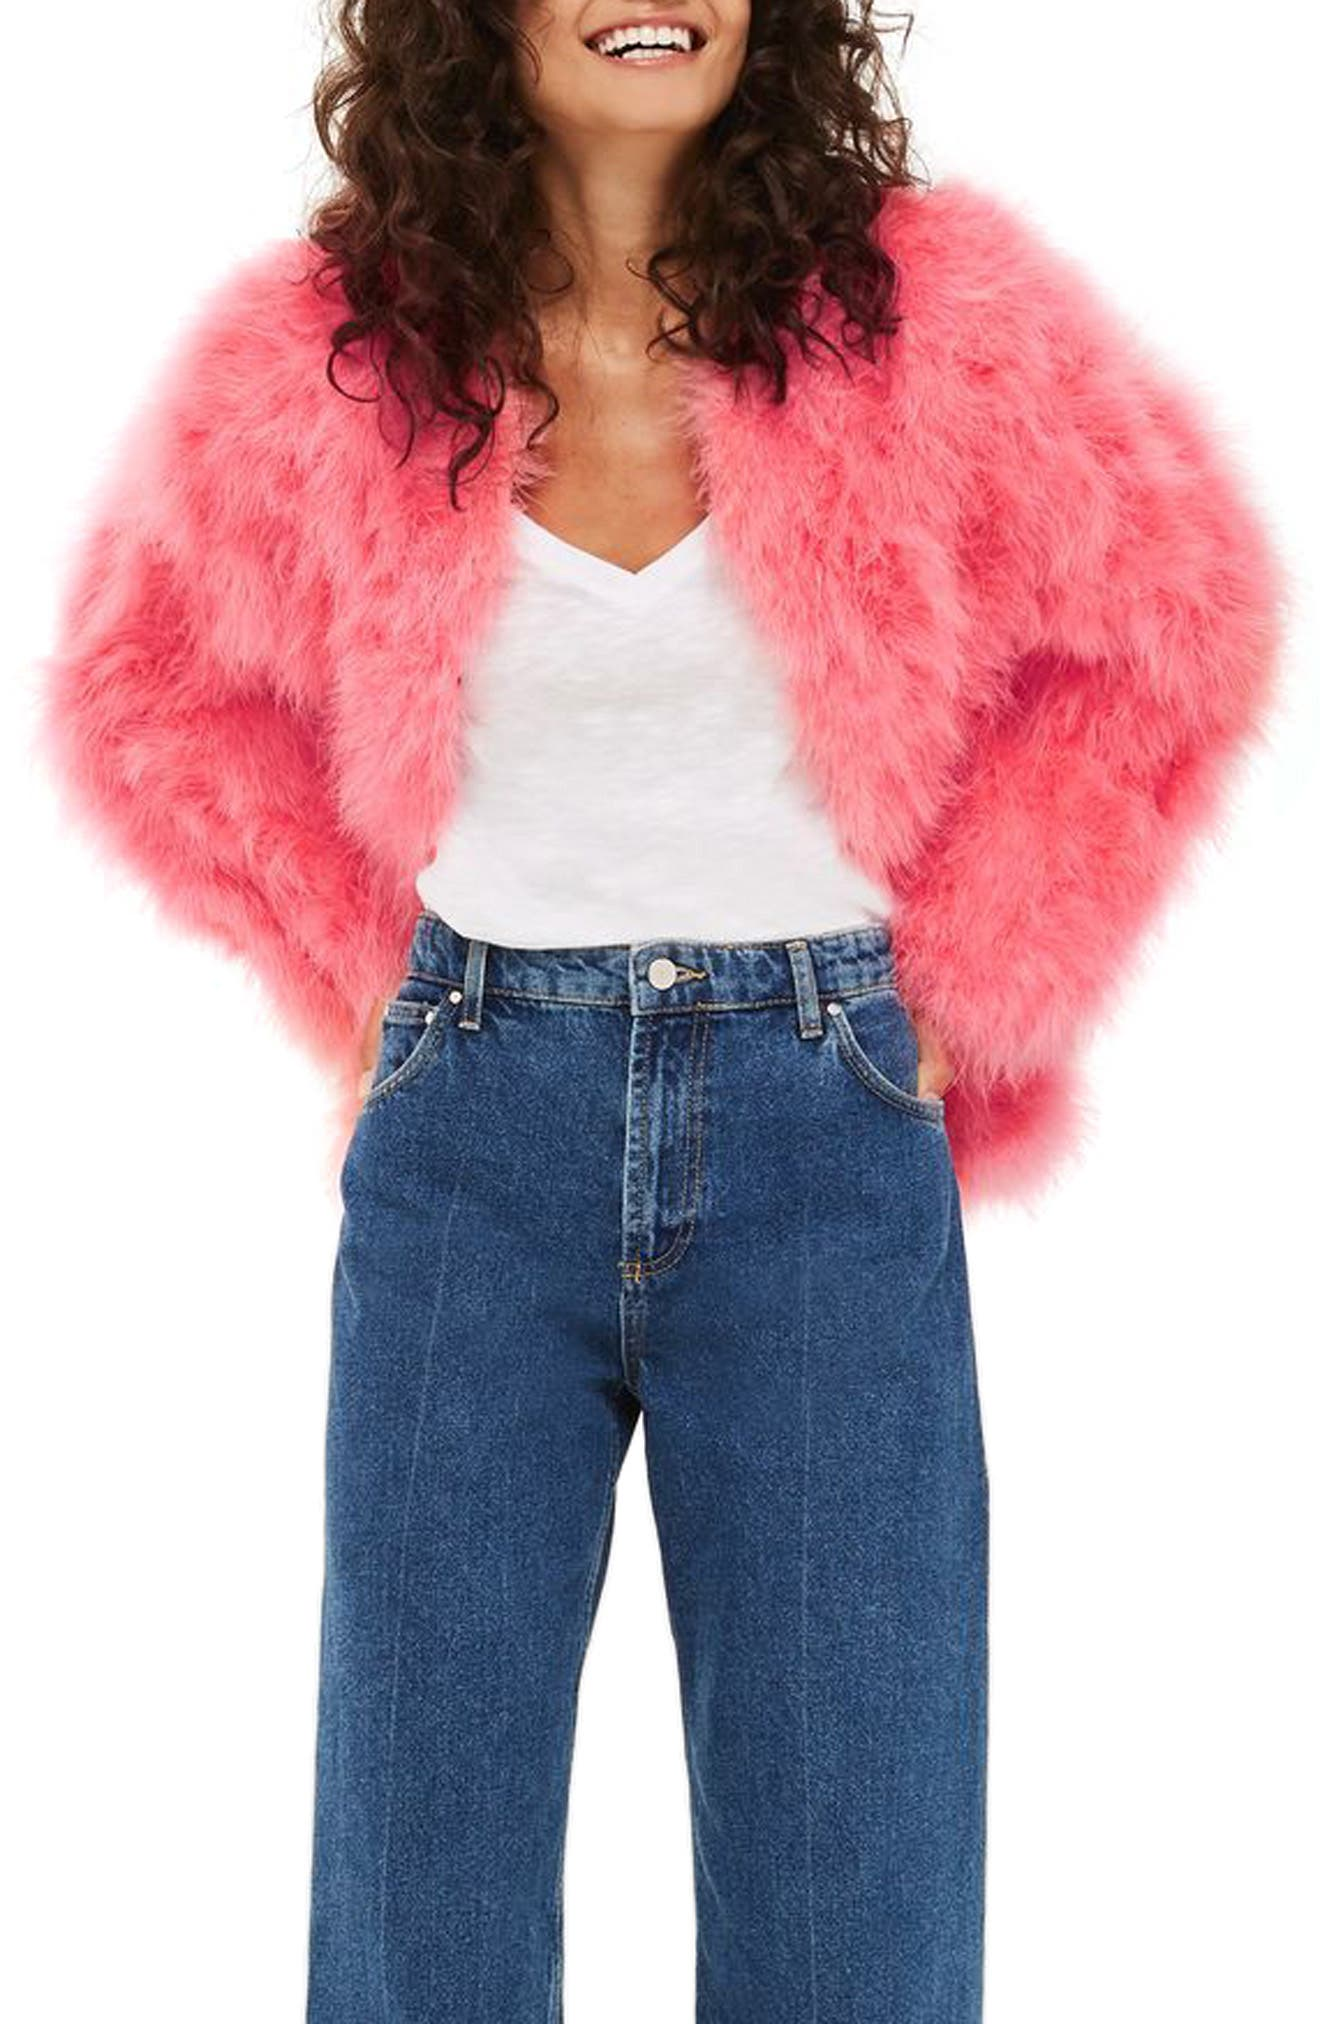 Marabou Feather Jacket,                         Main,                         color, Pink